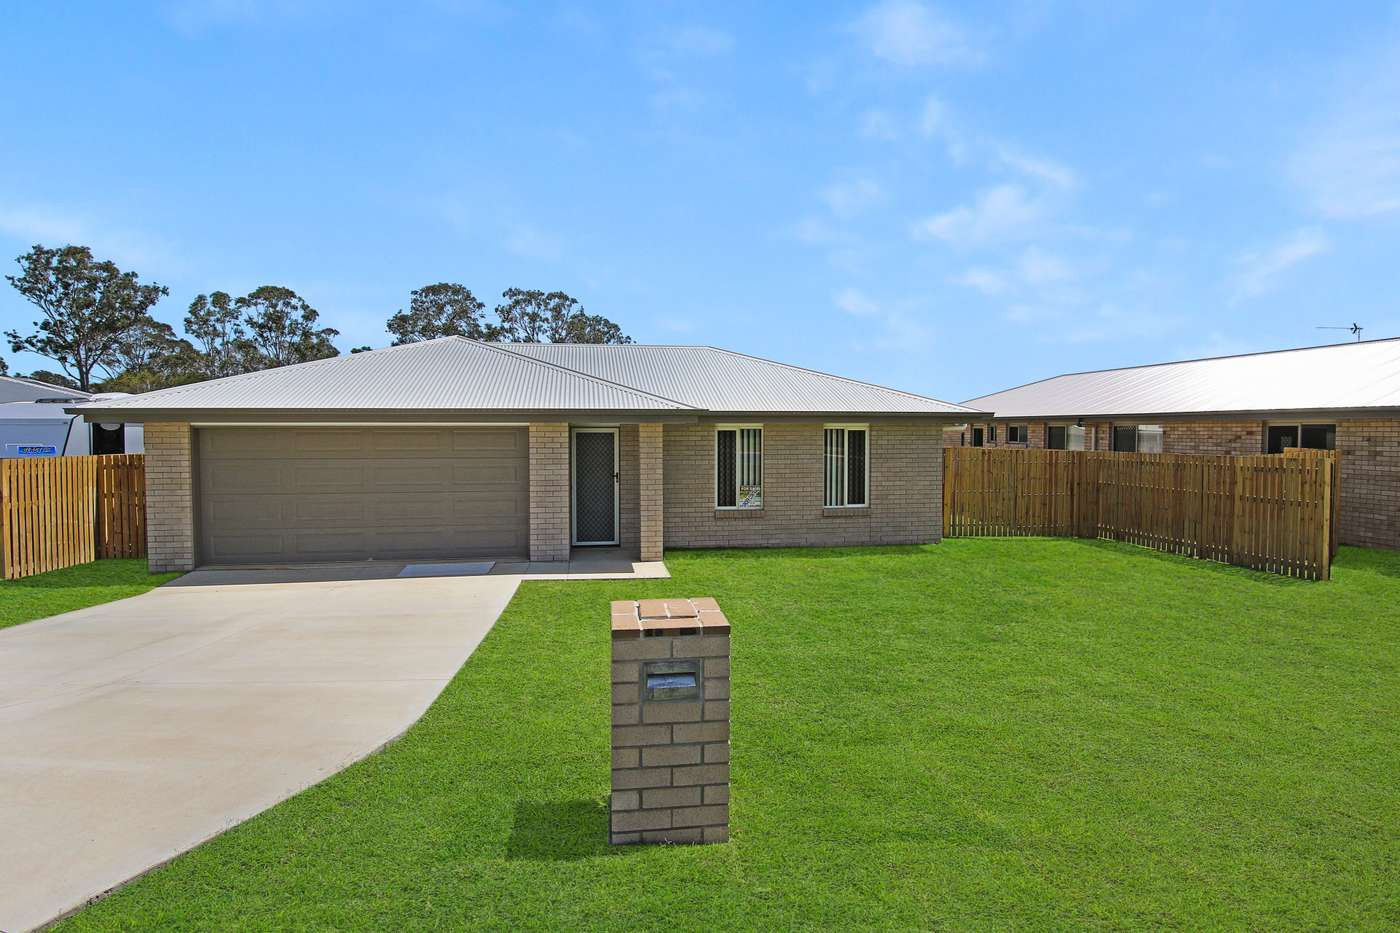 Main view of Homely house listing, 1 Raven Road, Kawungan, QLD 4655